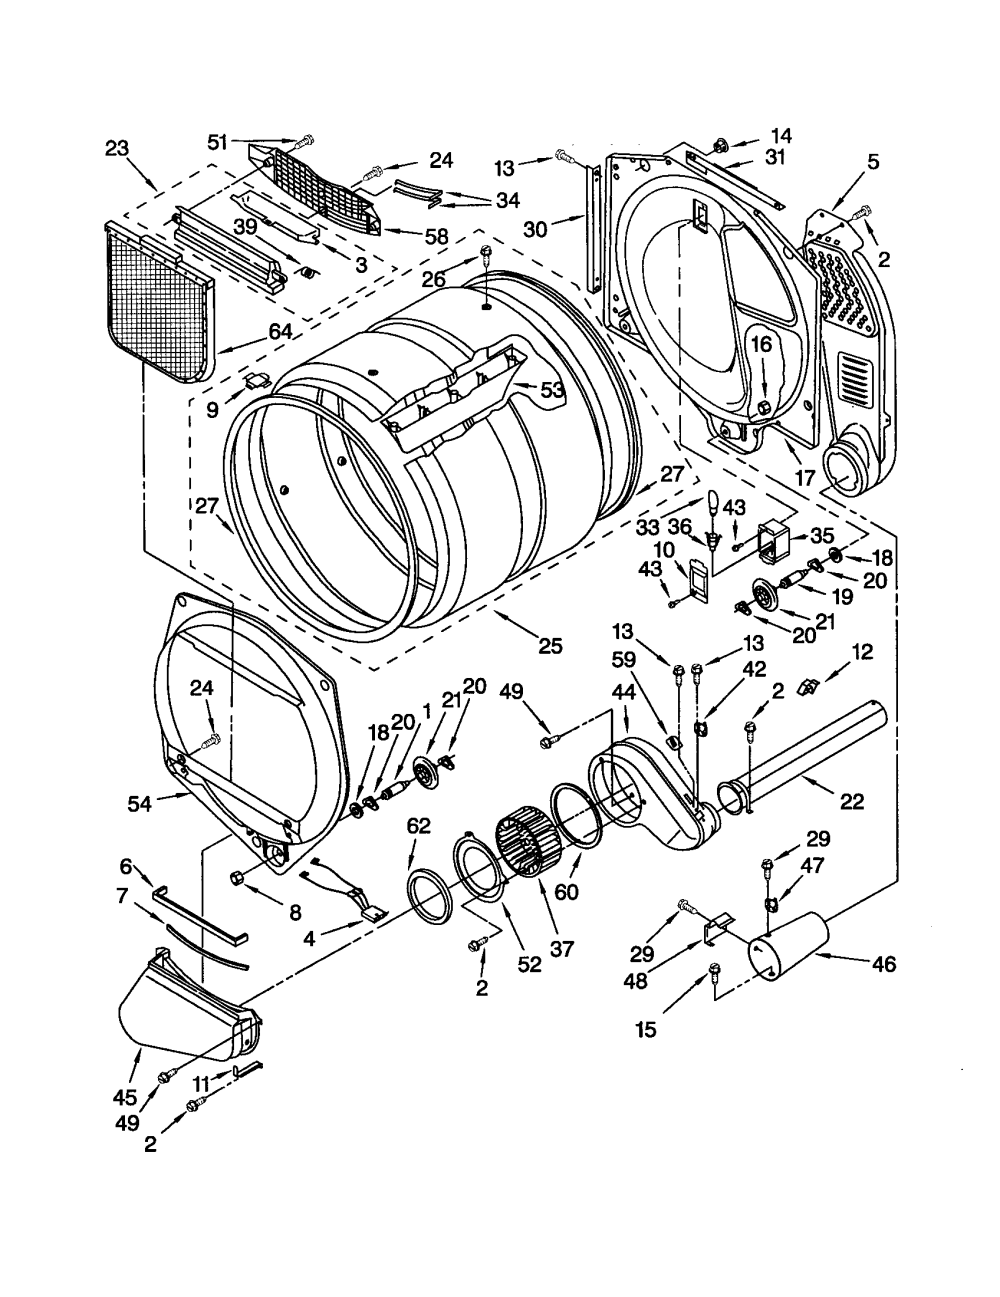 medium resolution of kenmore model 11092826102 residential dryer genuine parts kenmore dryer schematics sears dryer diagram